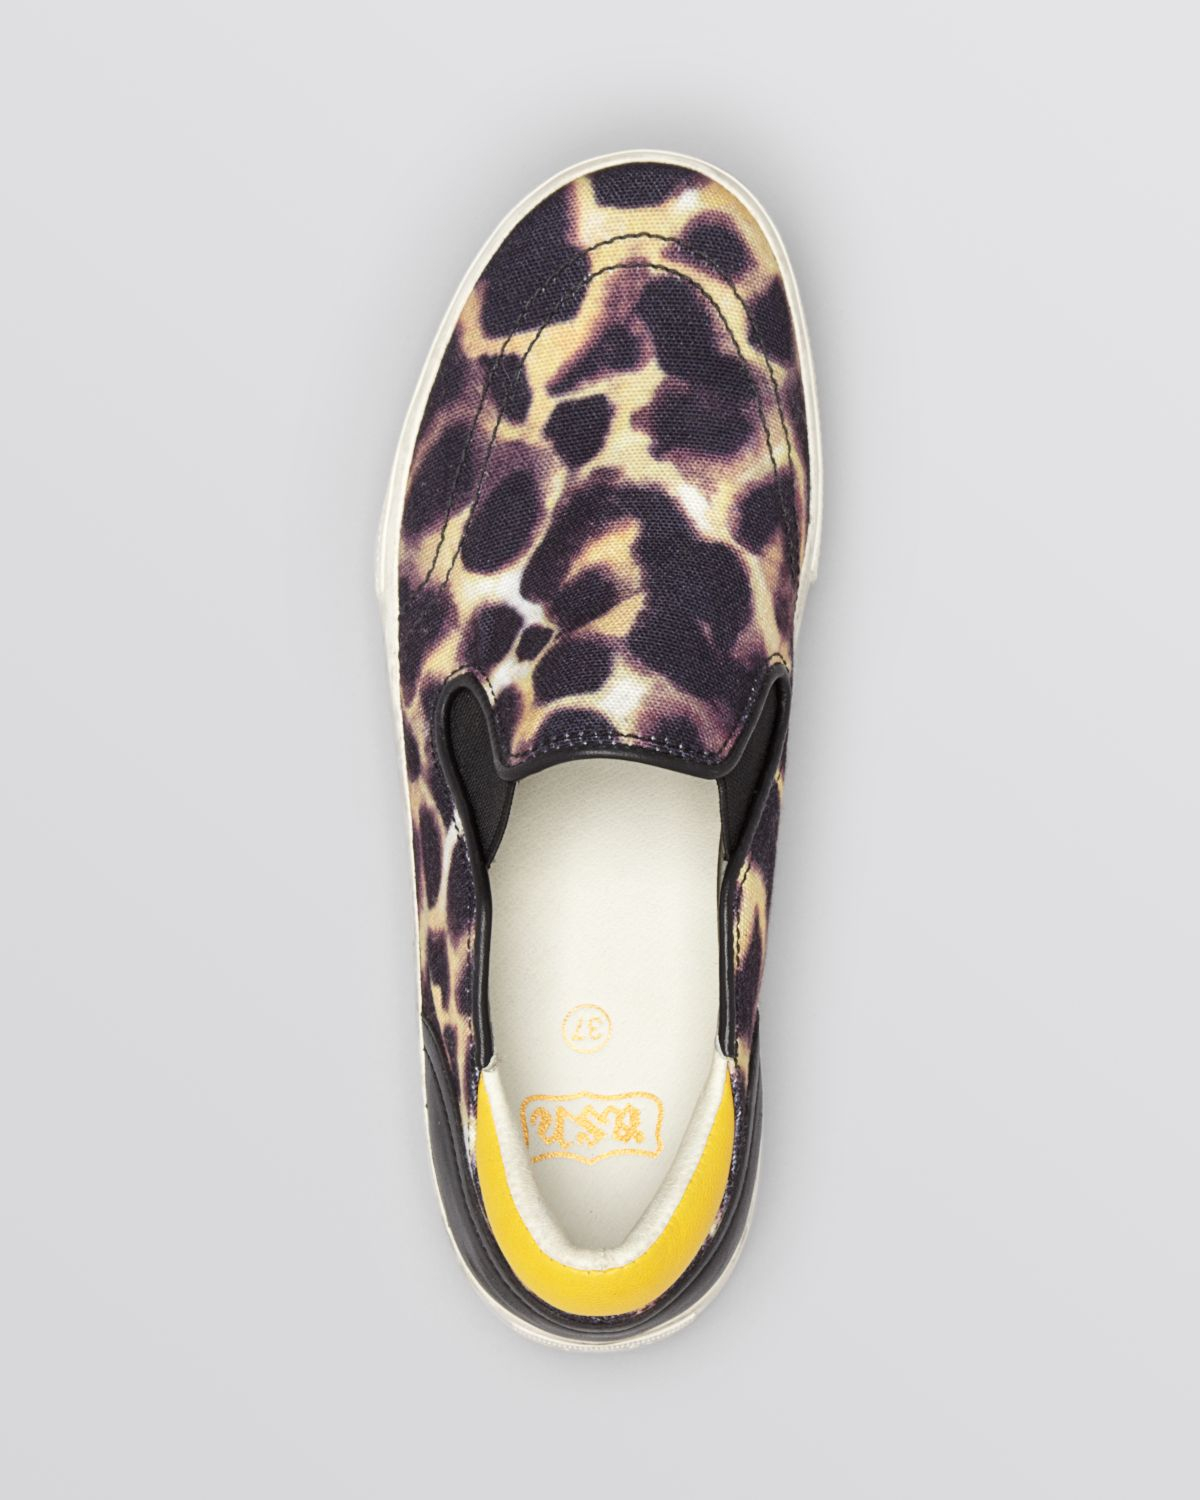 217a00458174 Ash Slip On Sneakers - Jungle Bis Cheetah Print in Yellow - Lyst